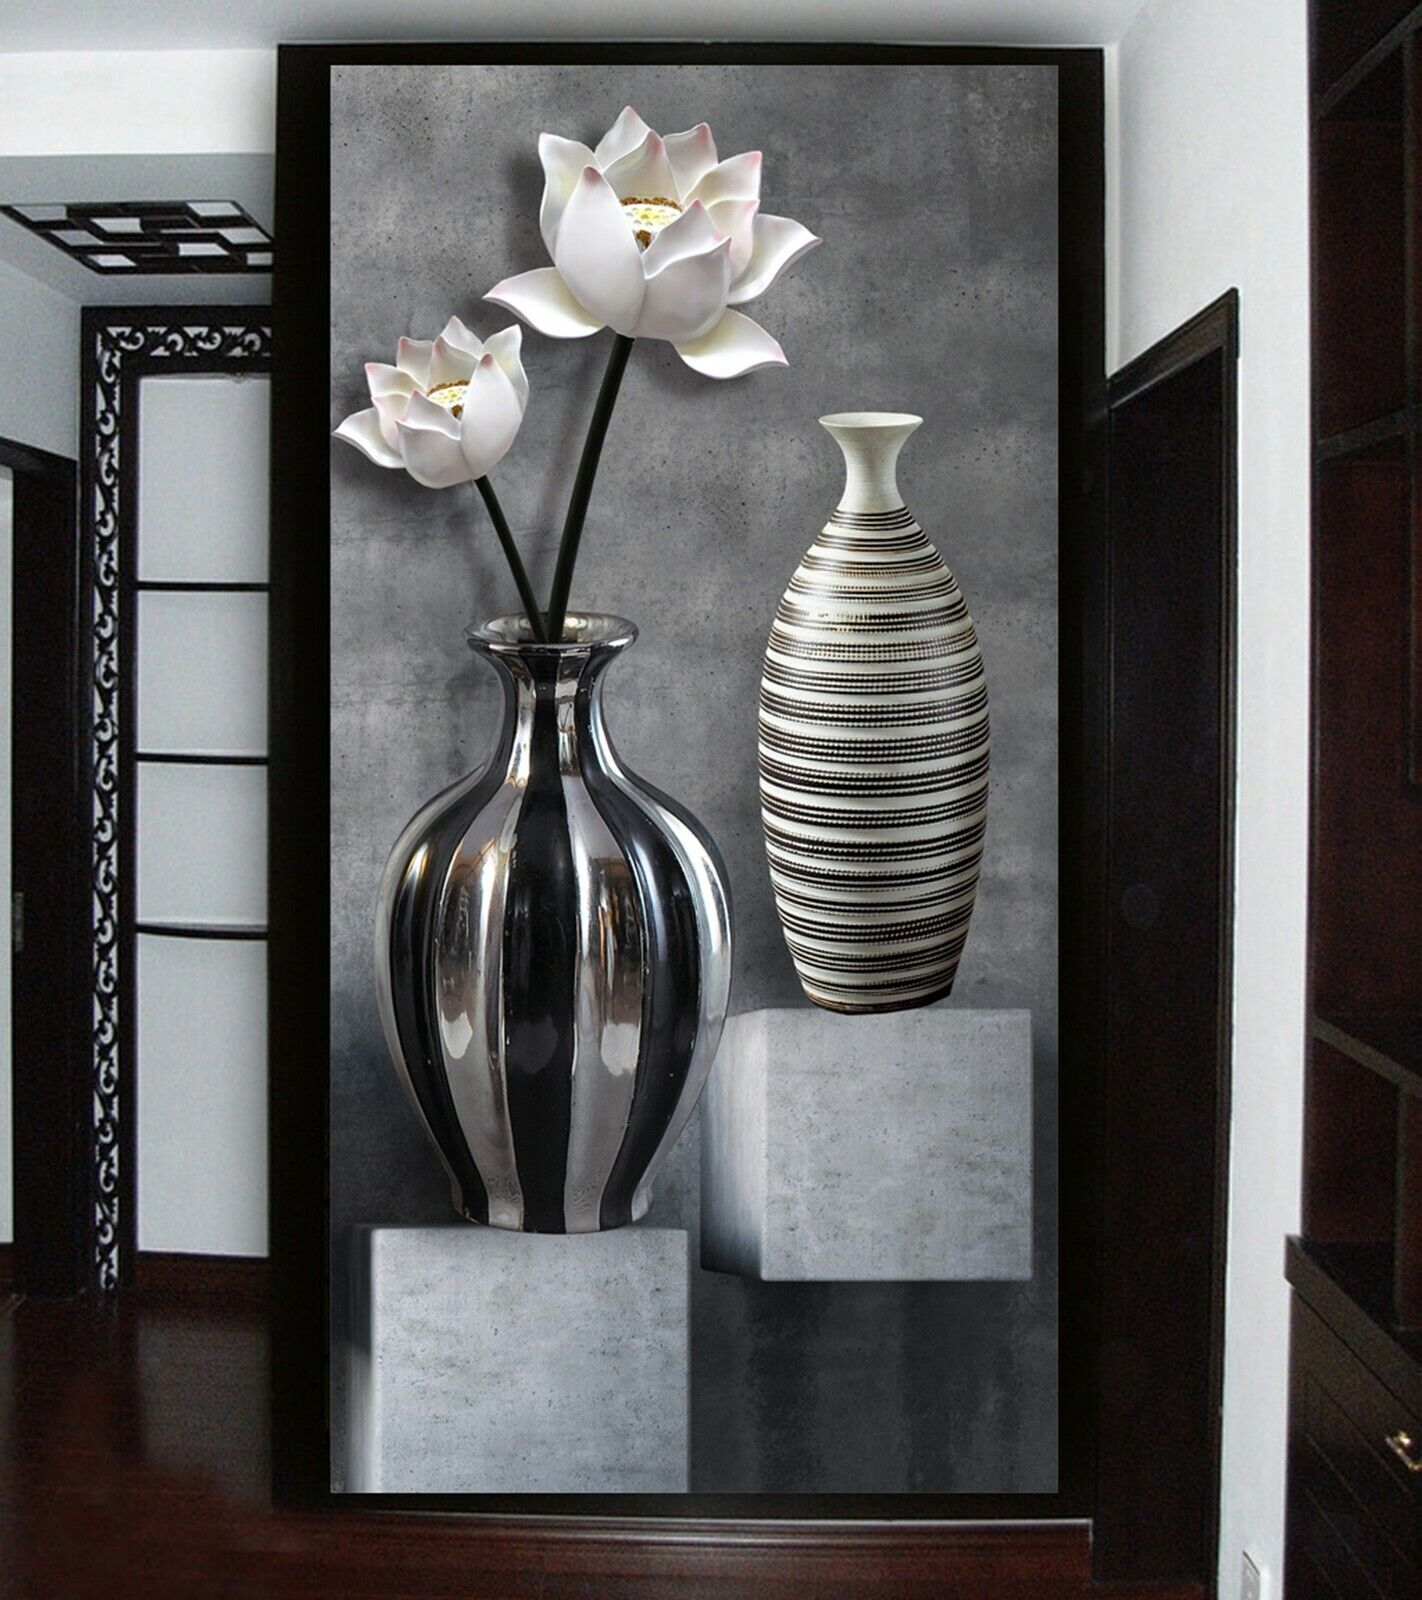 3D Art Vase Lotus N1223 Wallpaper Wall Mural Removable Self-adhesive Sticker Amy